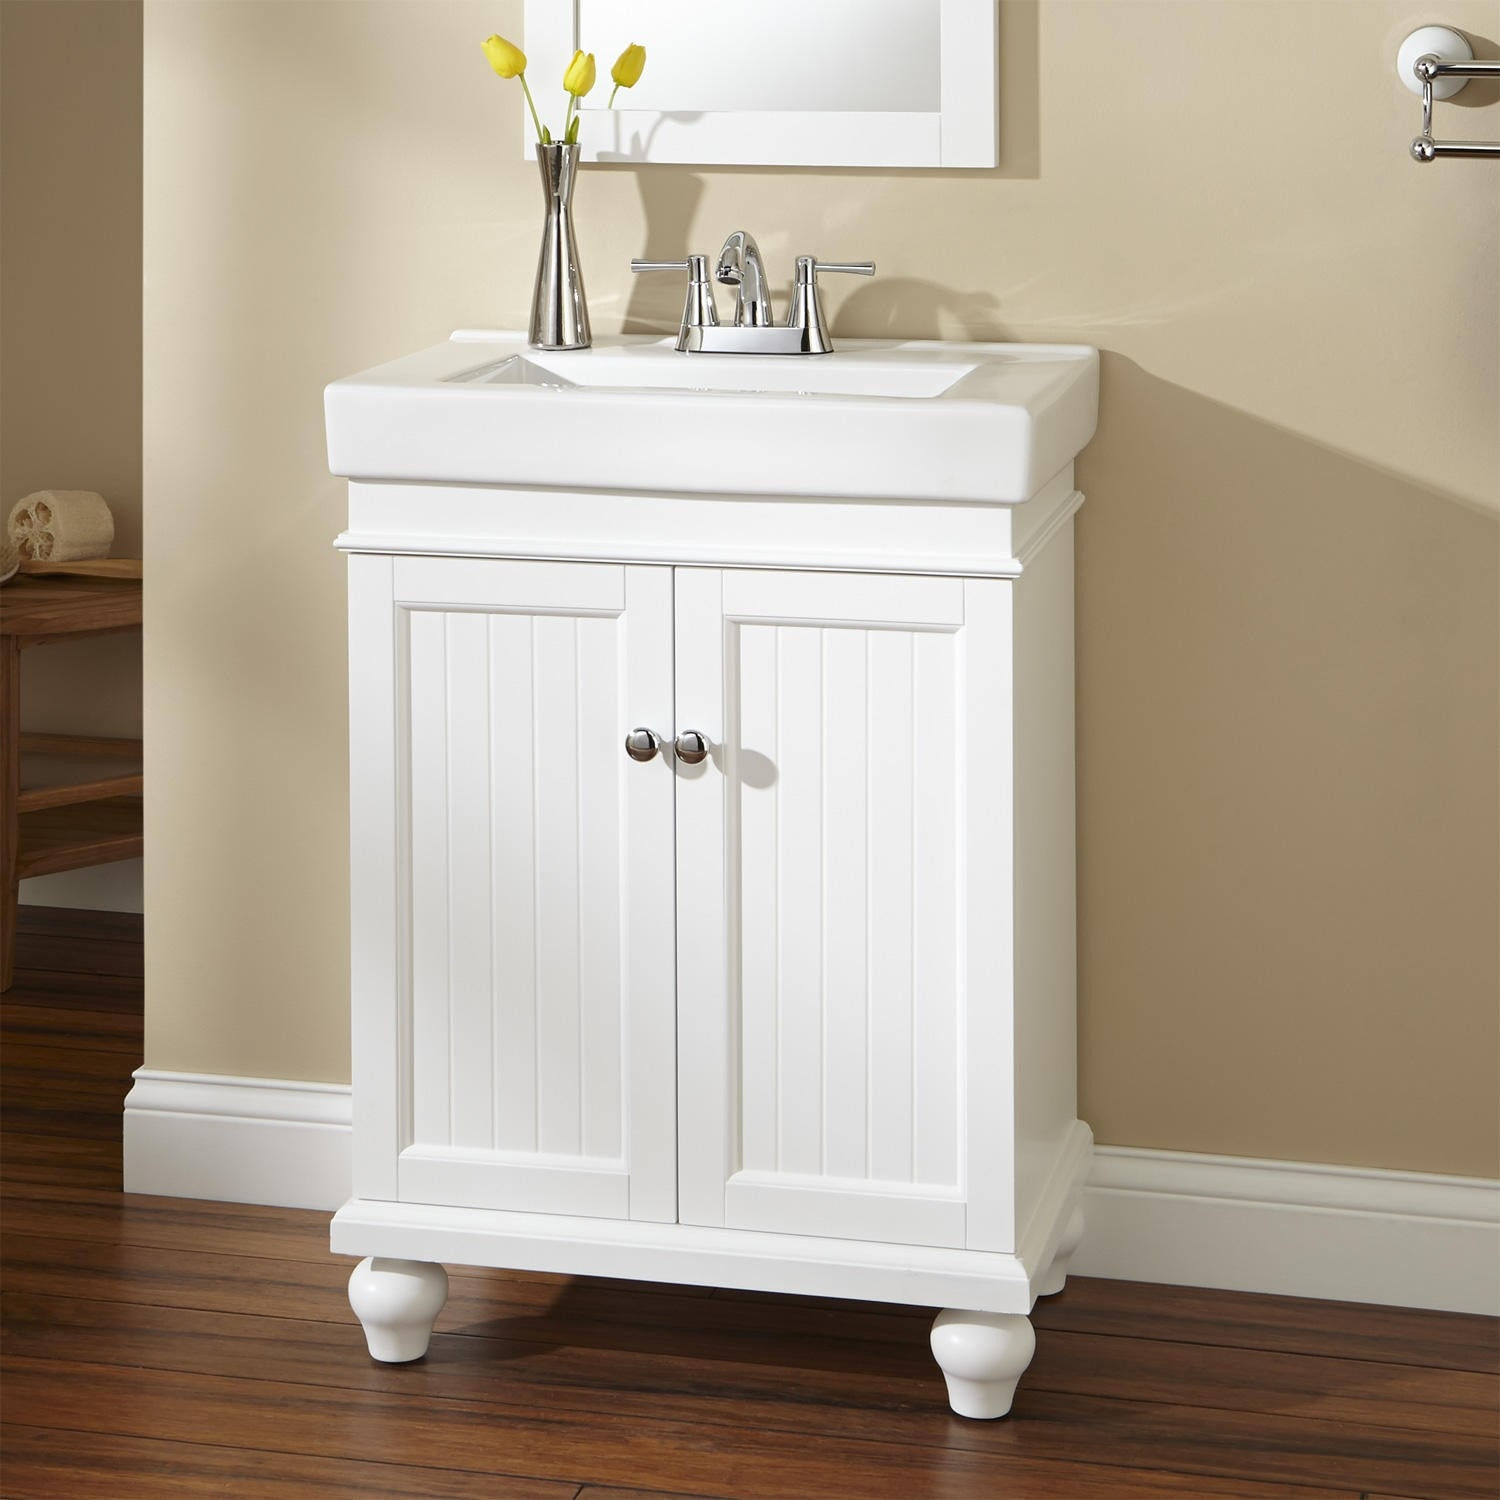 Bathroom Vanities 24 Inches Or Less